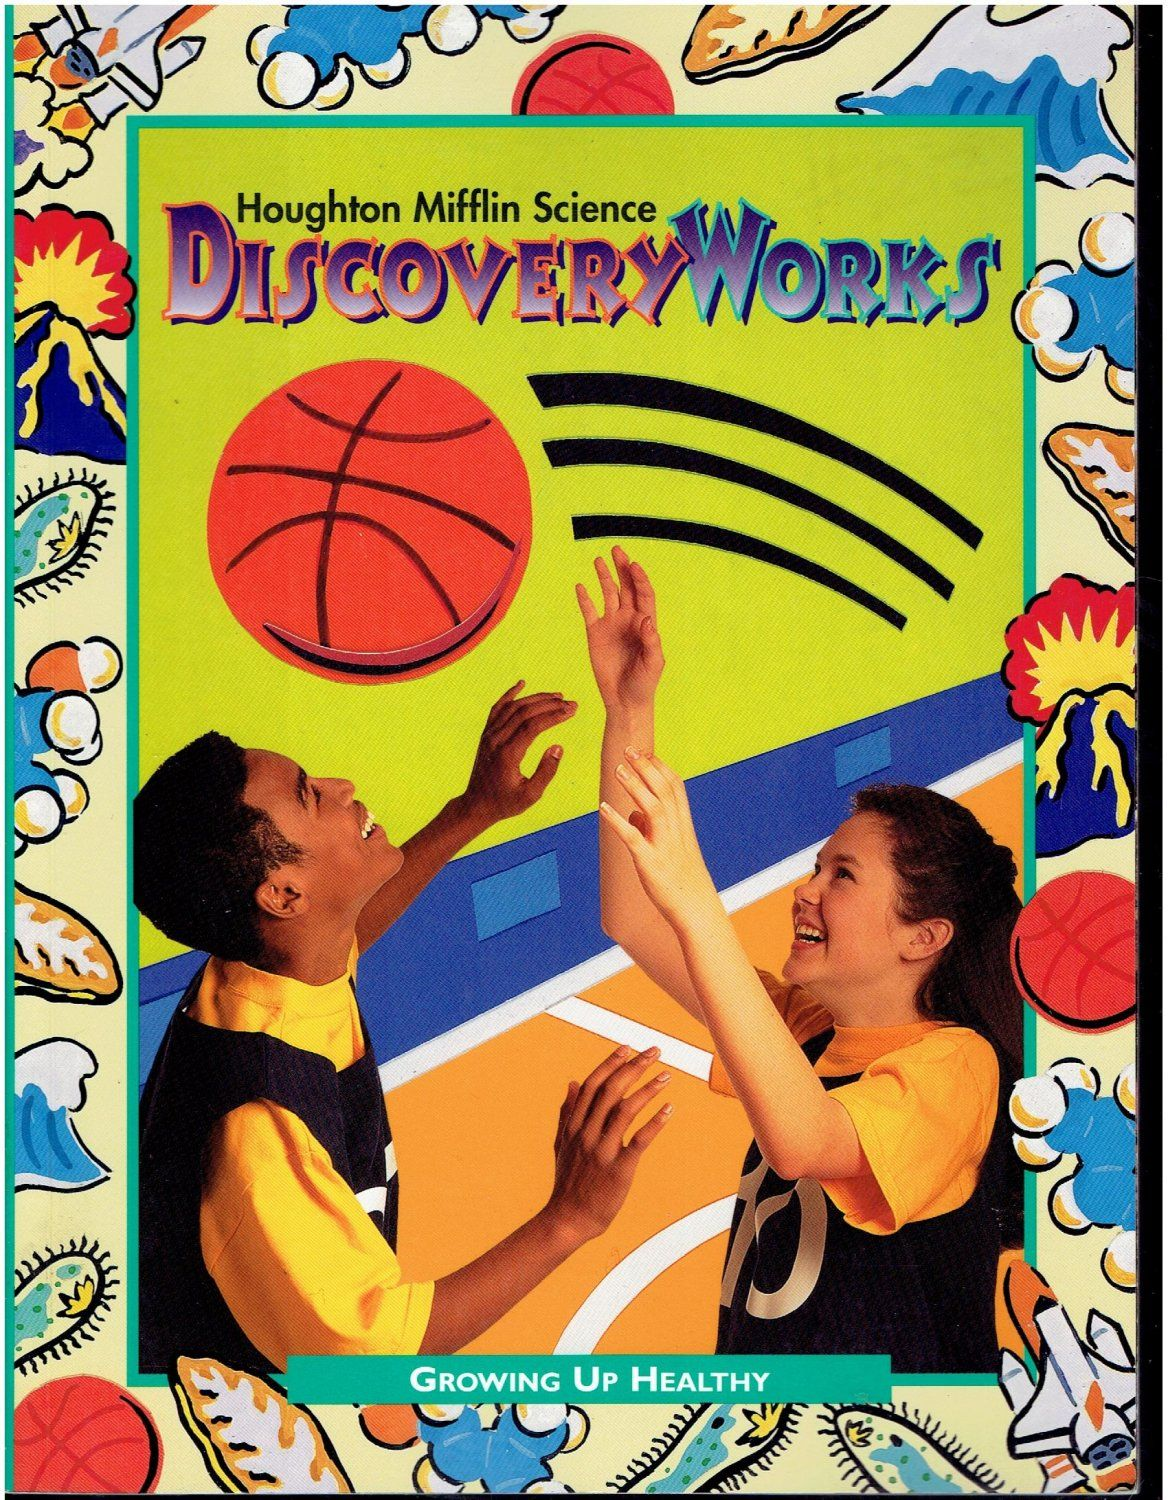 Houghton Mifflin Science Discovery Works Growing Up